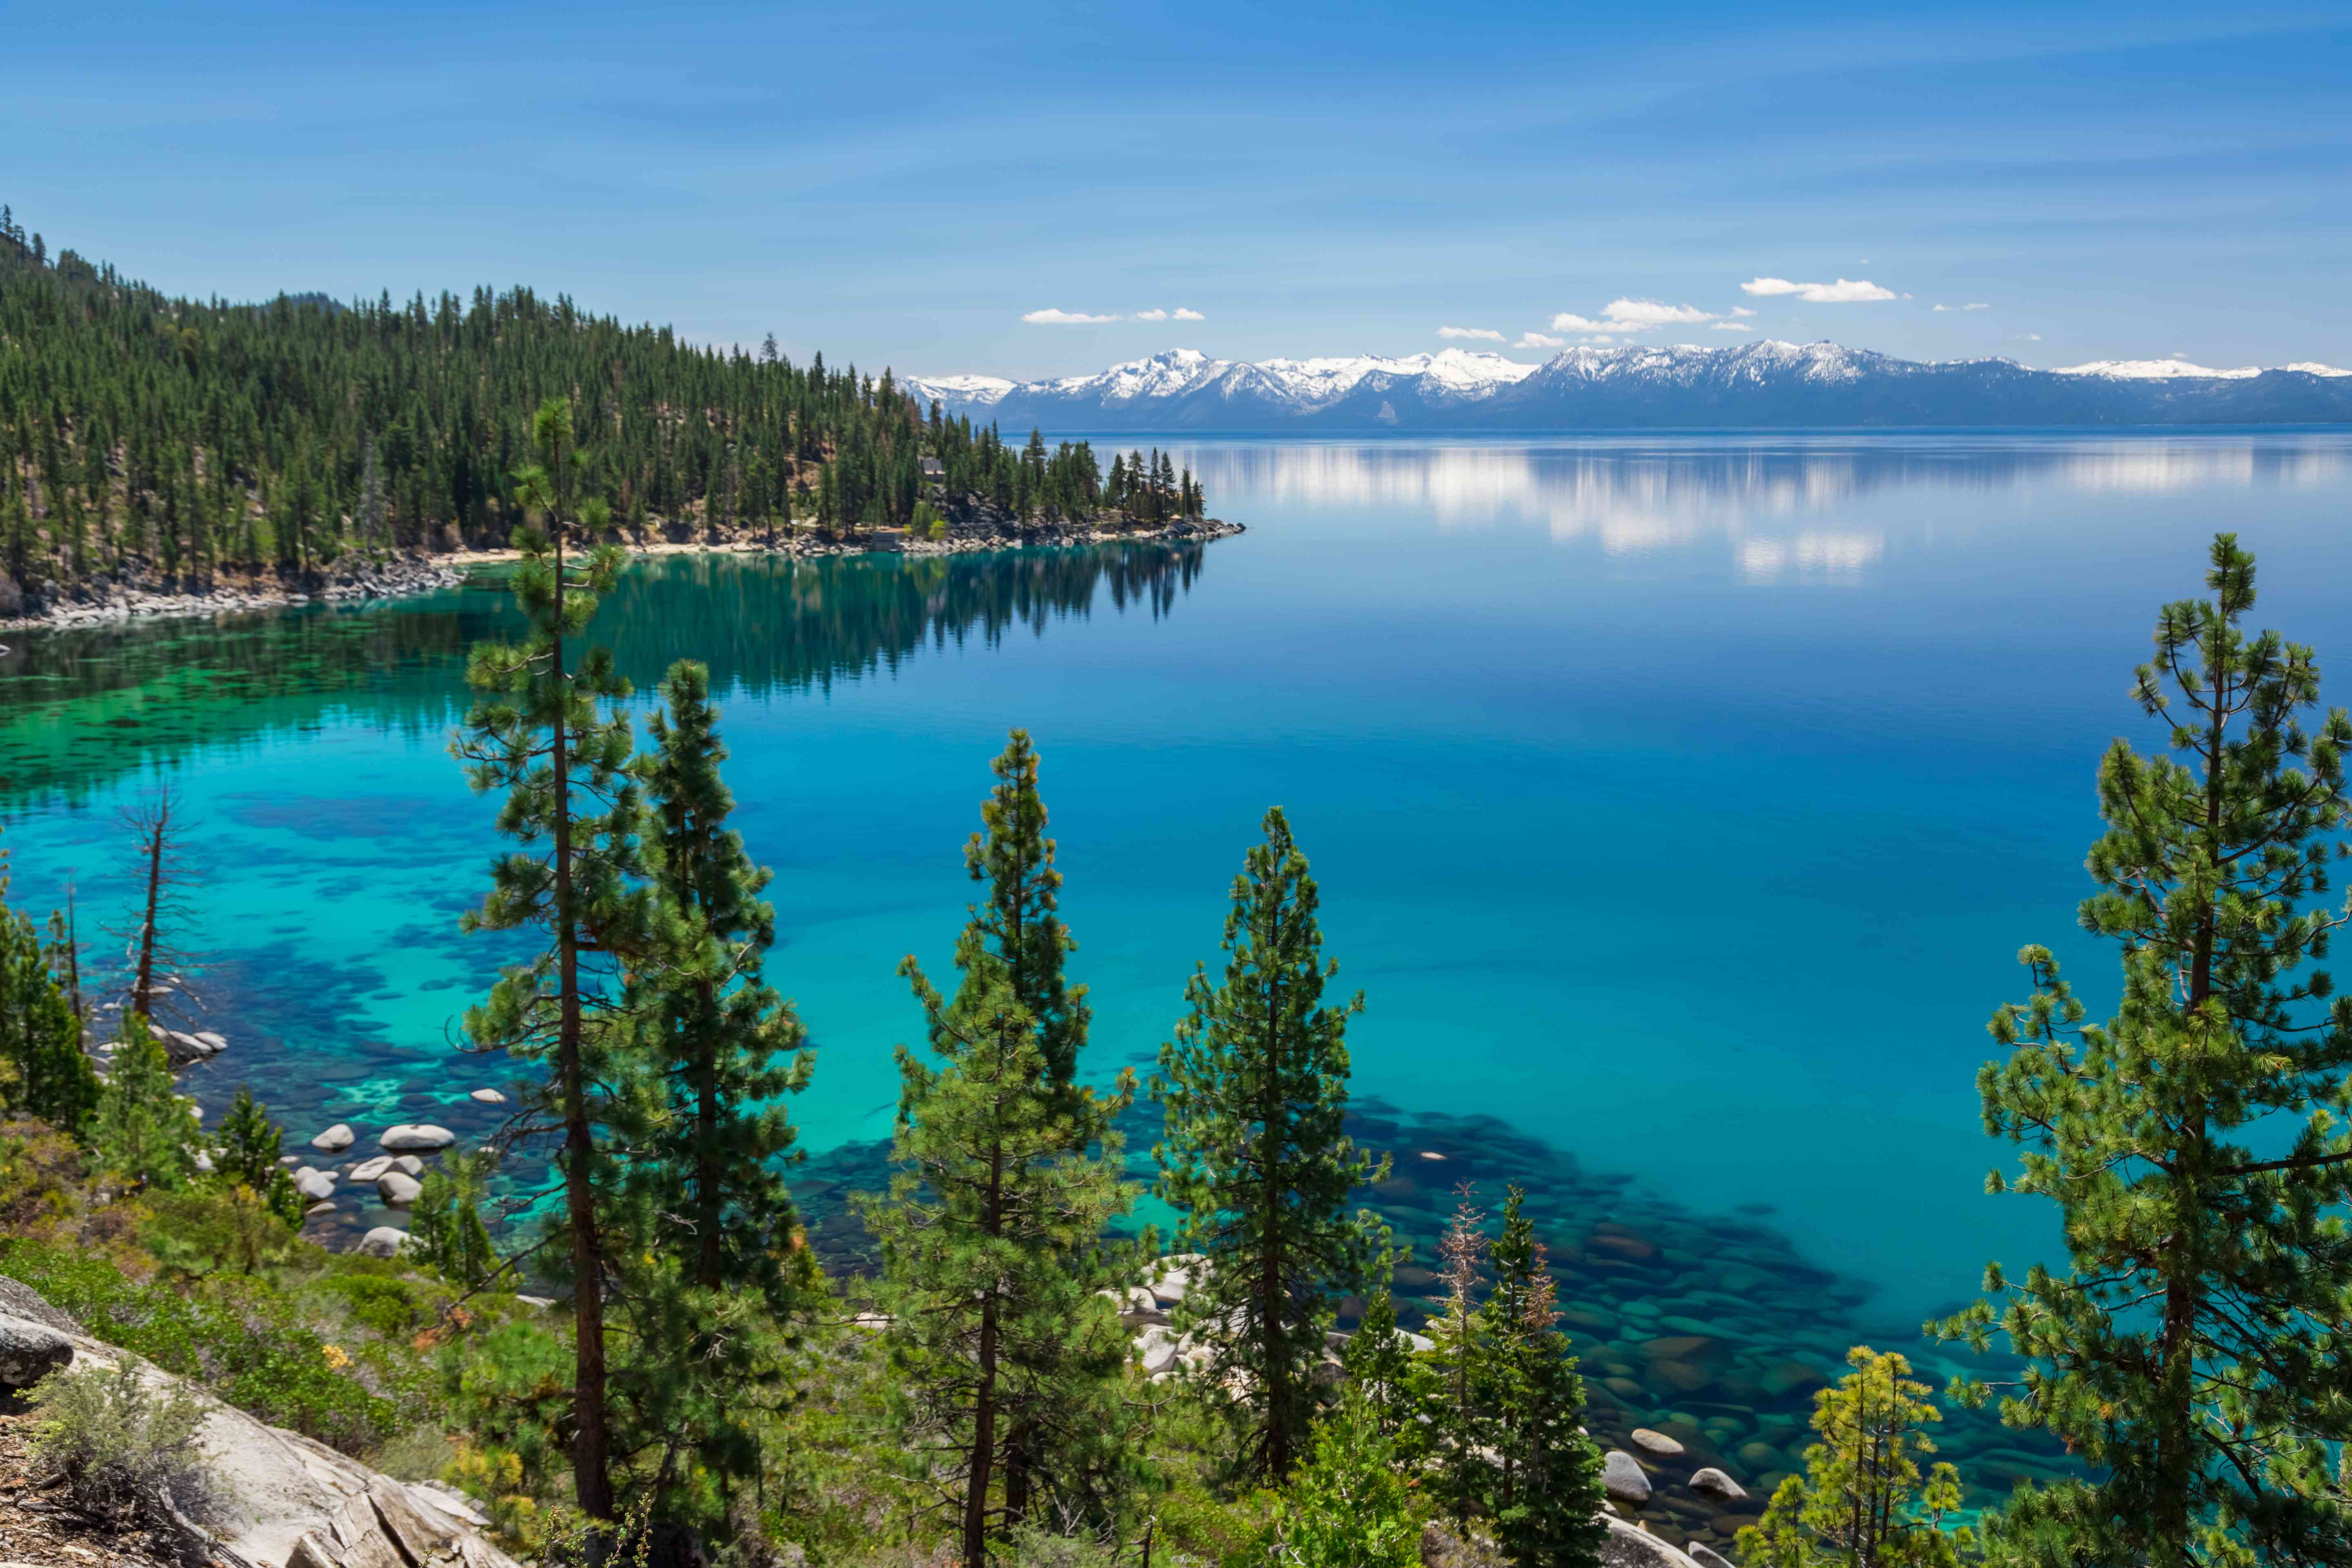 Climate change has caused Lake Tahoe to warm earlier in the springtime, resulting in much cloudier waters.